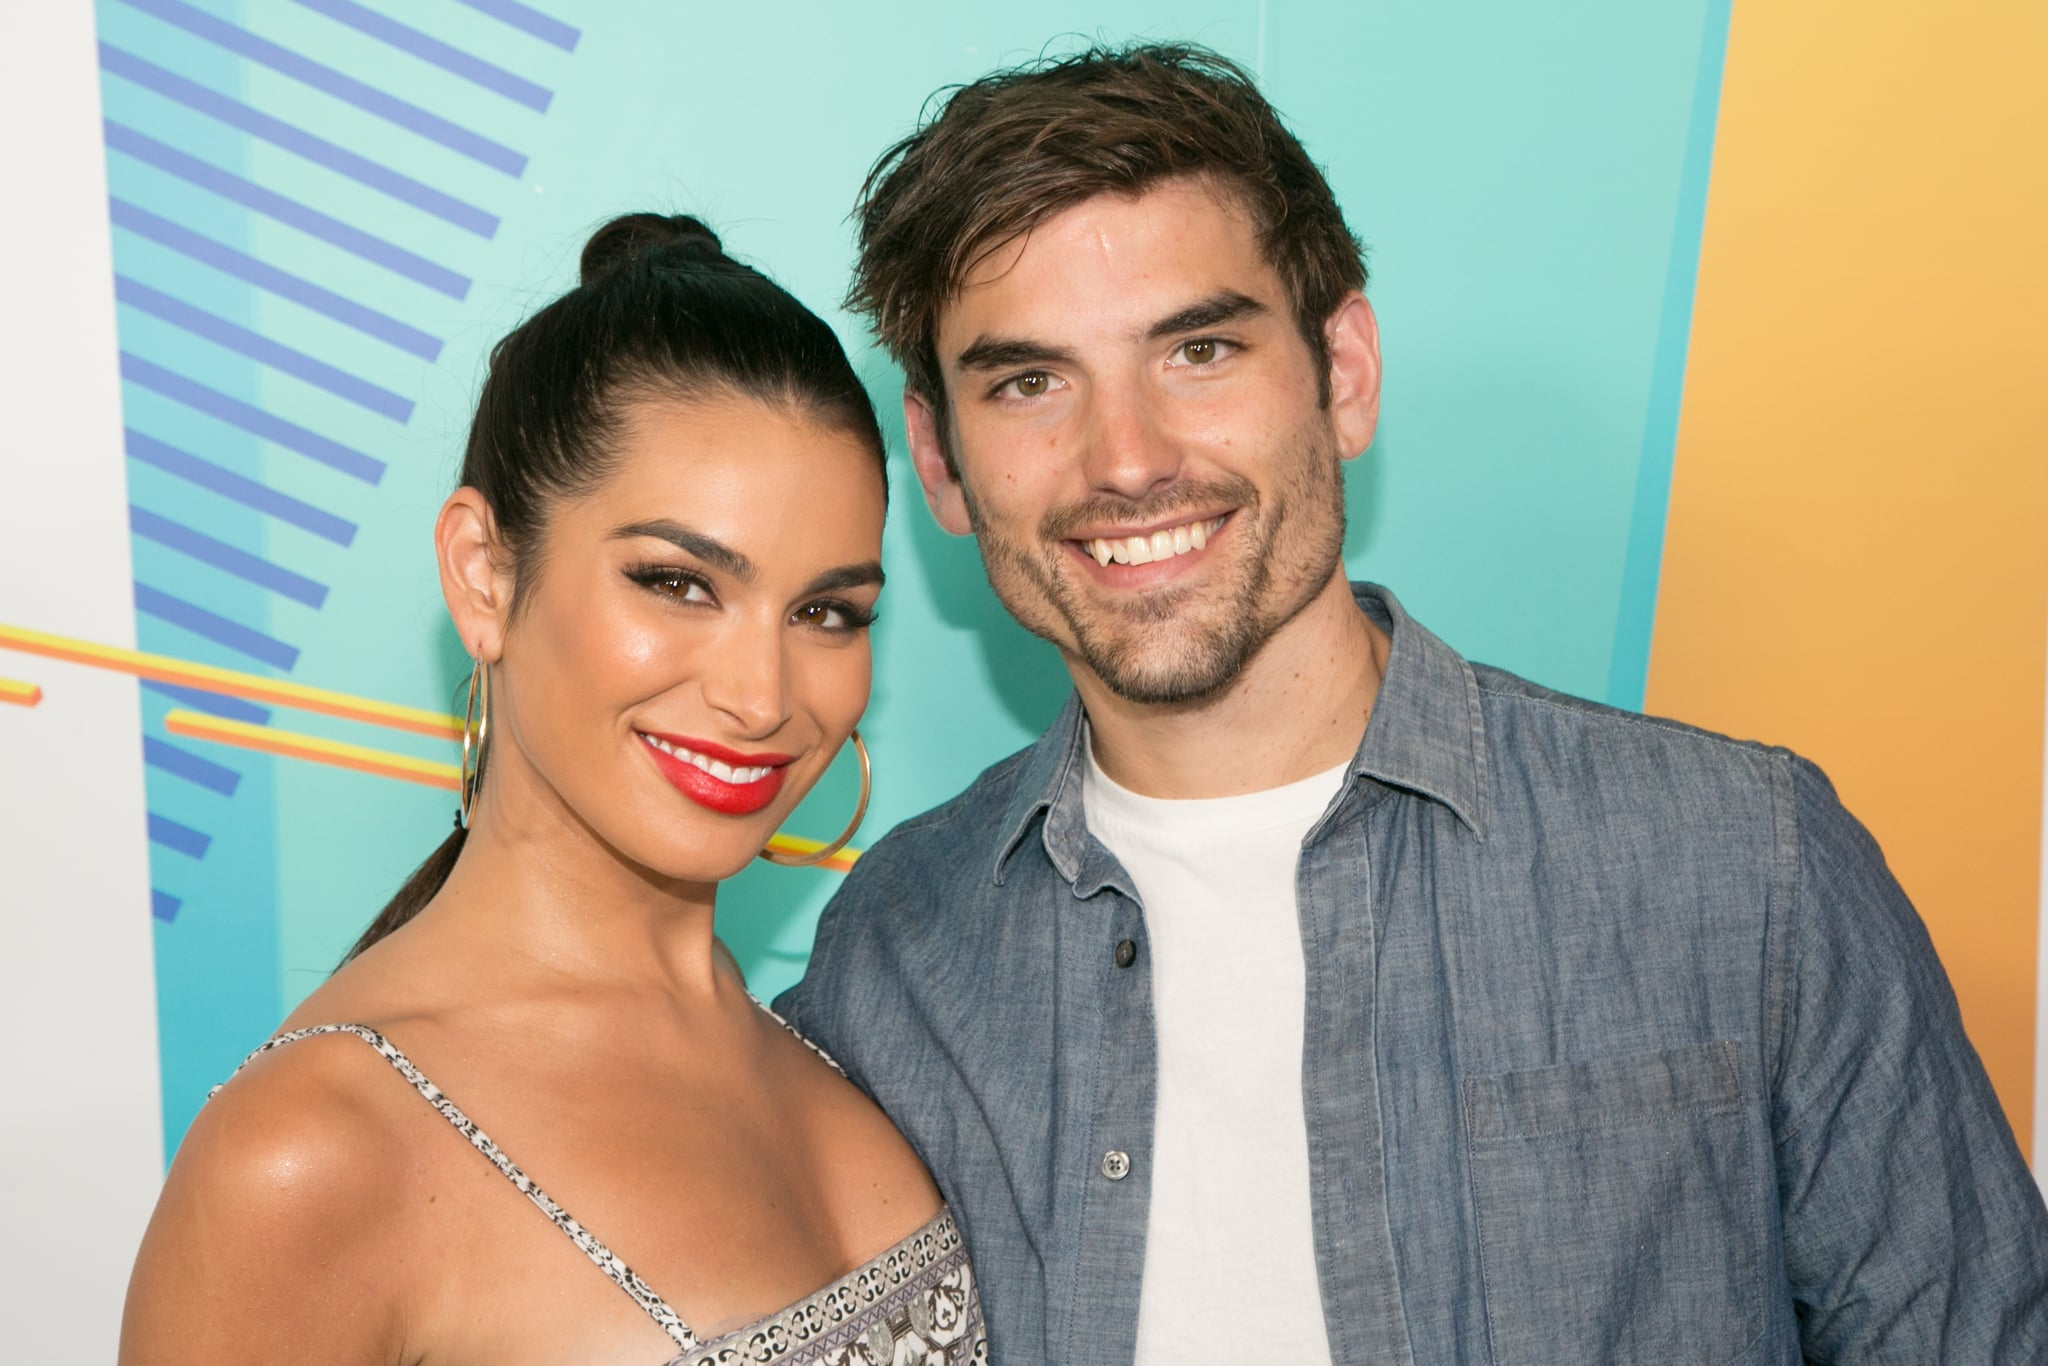 LOS ANGELES, CA - JUNE 02:  Ashley Iaconetti (L) and Jared Haibon arrive for iHeartRadio's KIIS FM Wango Tango By AT&T at Banc of California Stadium on June 2, 2018 in Los Angeles, California.  (Photo by Gabriel Olsen/WireImage)